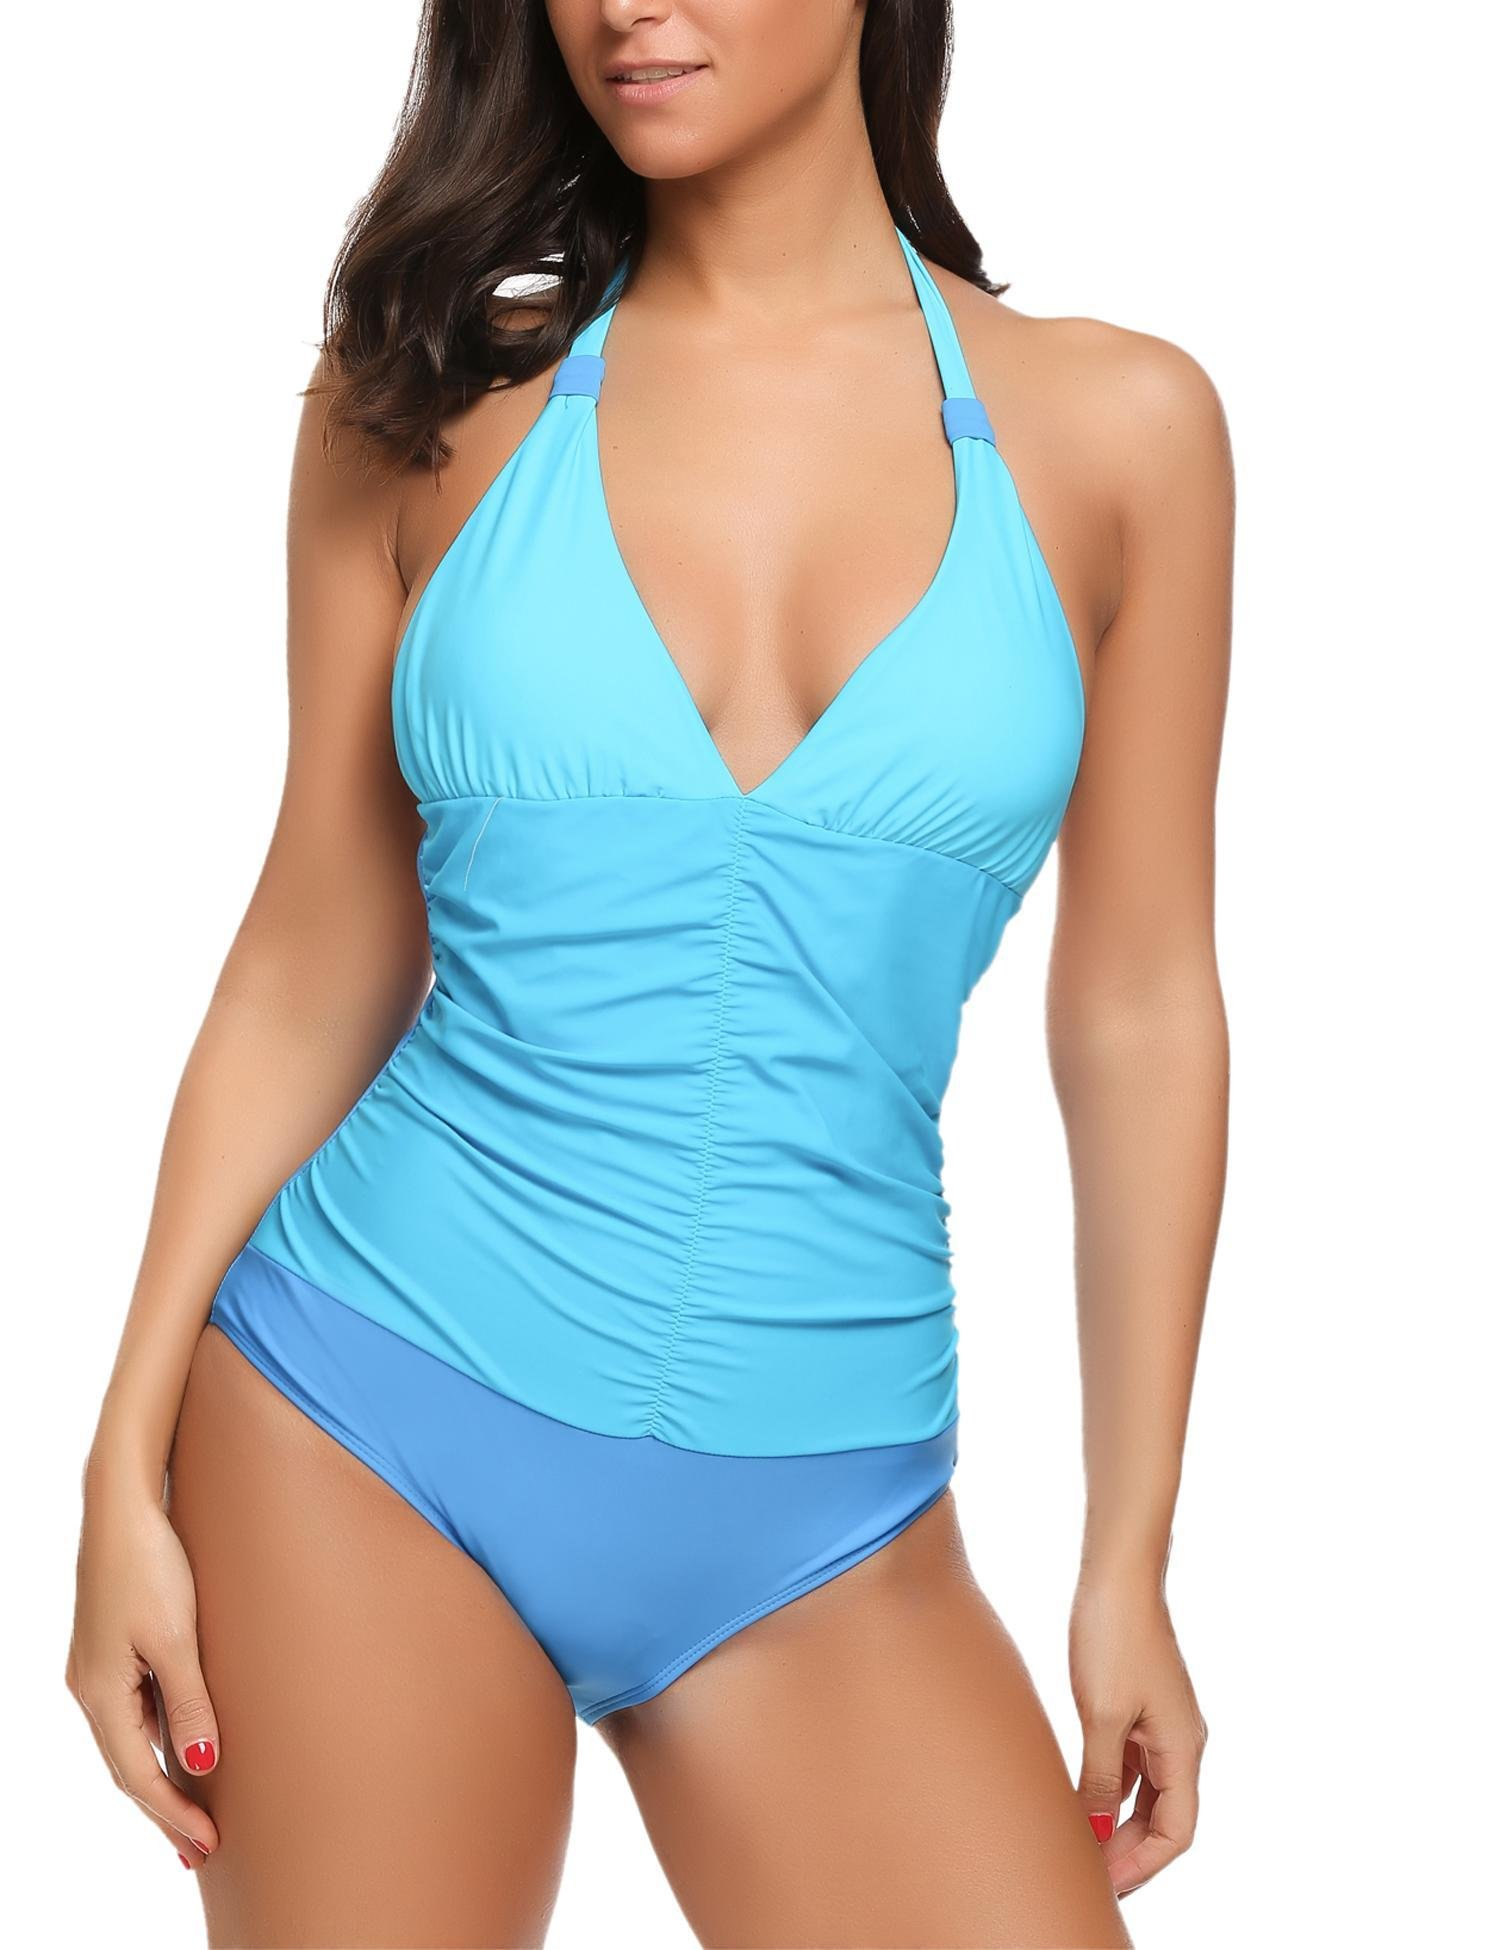 Avidlove Women's Halter One Piece Swimsuits Monokini Shirred Bathing Suit(Blue,M)